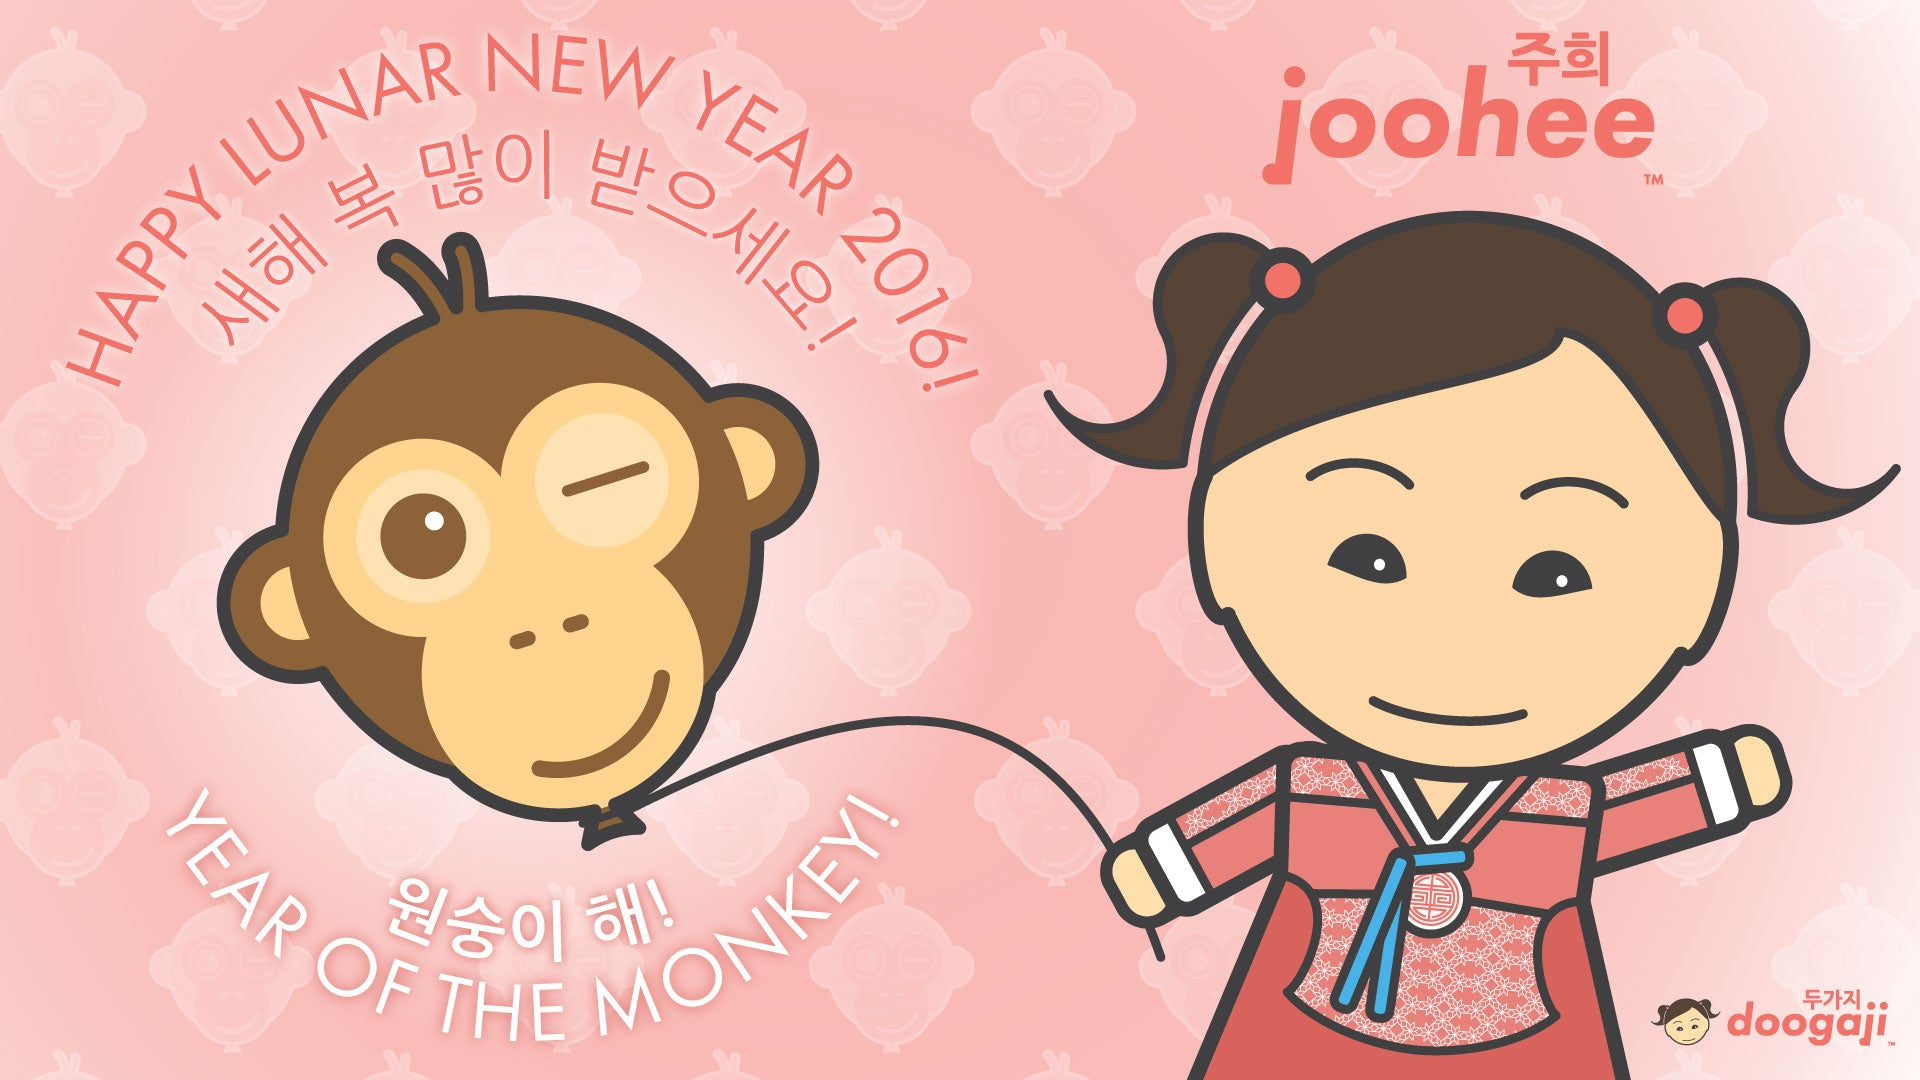 Joohee New Year 2016 Wallpaper